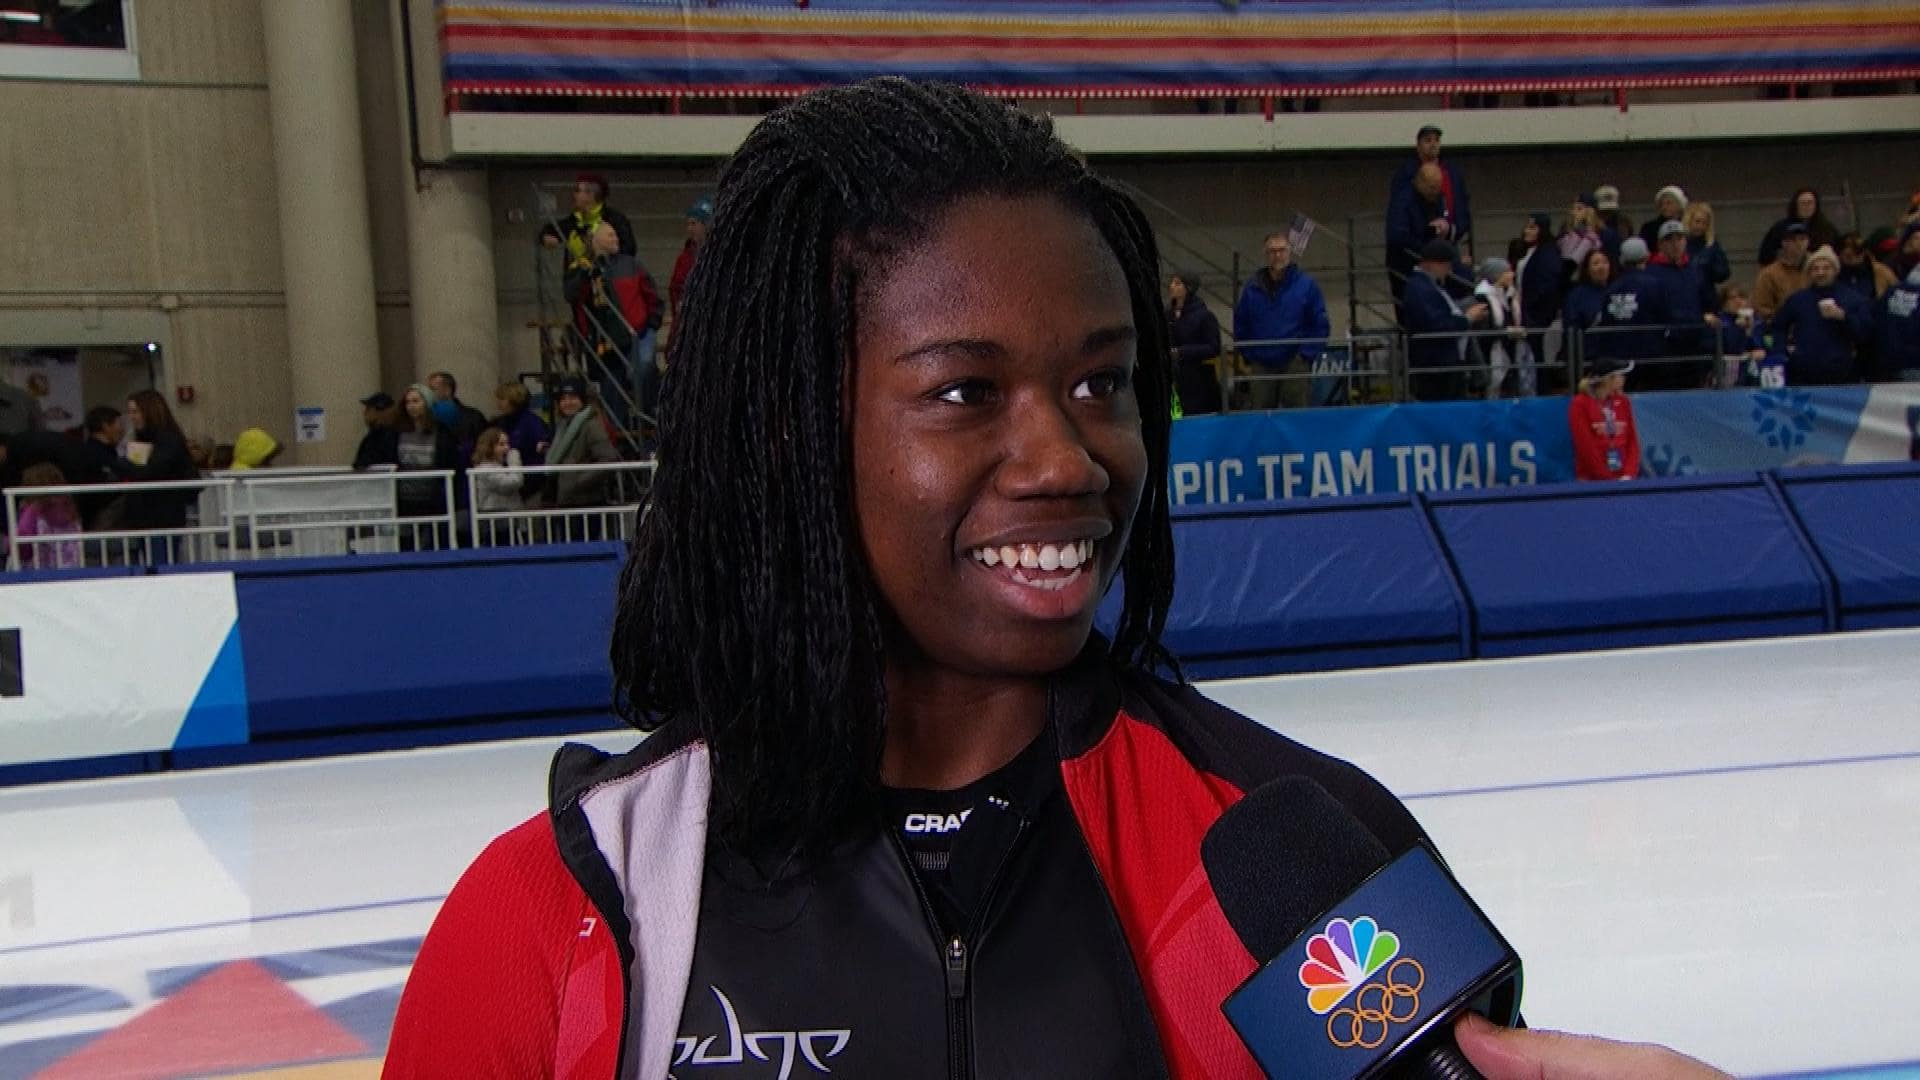 Erin Jackson (photo: nbc.com)